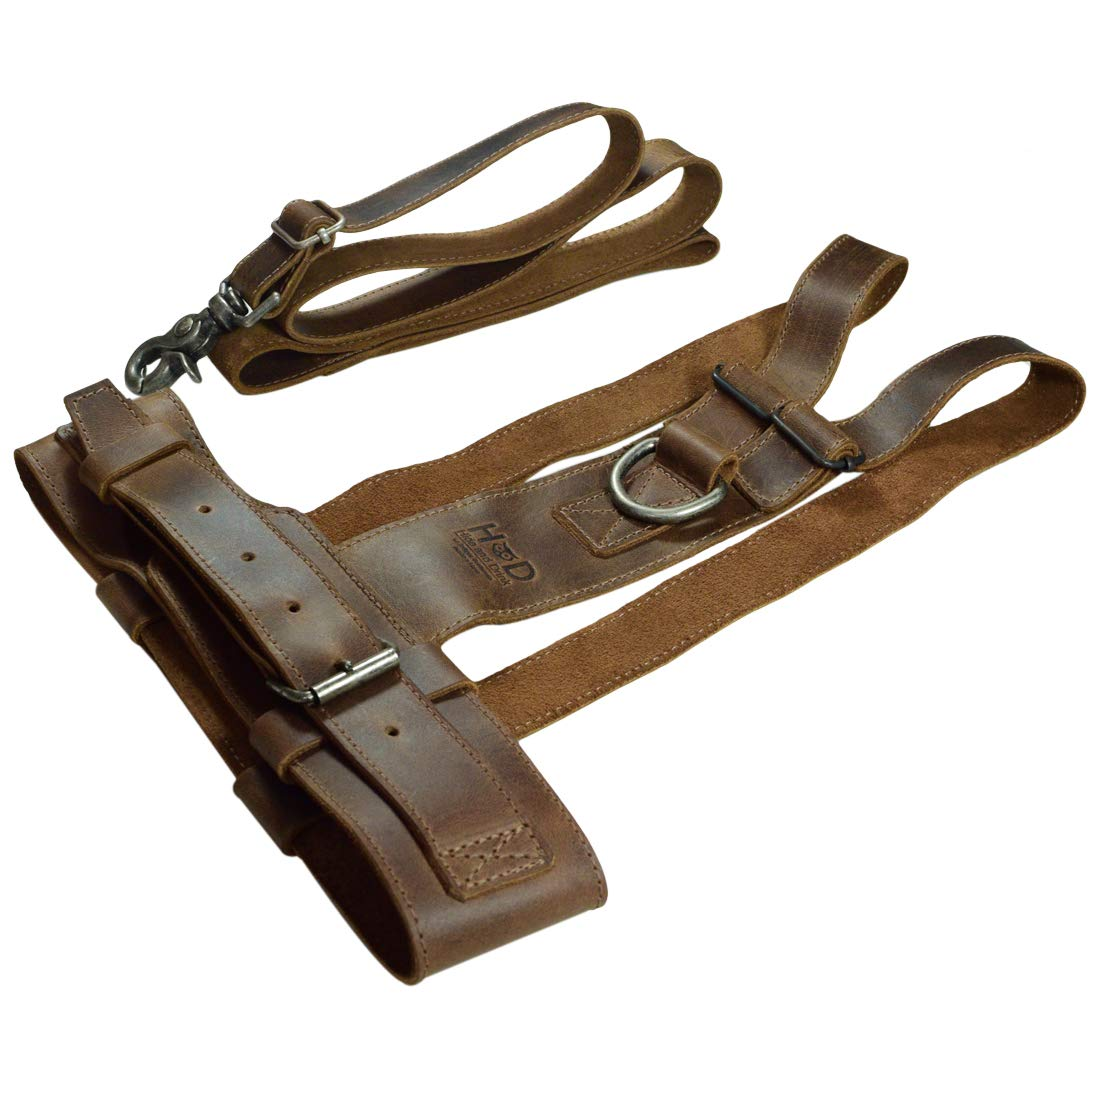 Handmade Includes 101 Year Warranty :: Bourbon Brown Walking Baby Anti-Lost Belt Child Safety Chest Size 9-11 in Leather Toddler Harness Hide /& Drink